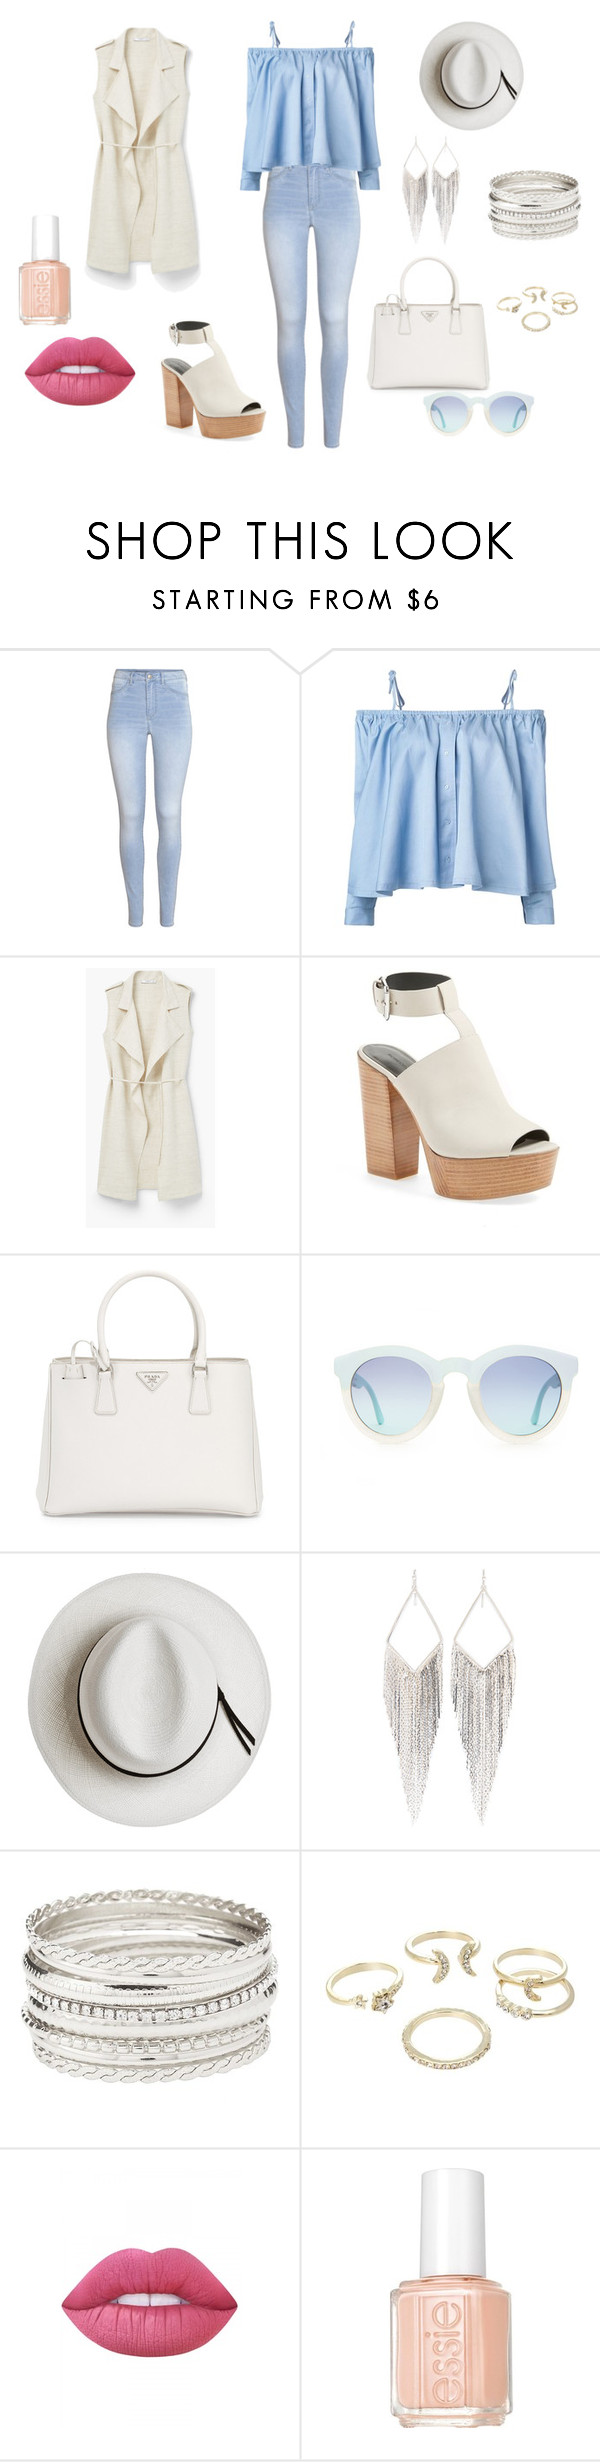 """""""spring"""" by armariodevero on Polyvore featuring moda, H&M, Sandy Liang, MANGO, Rebecca Minkoff, Prada, Calypso Private Label, Jules Smith, Charlotte Russe y Lipsy"""